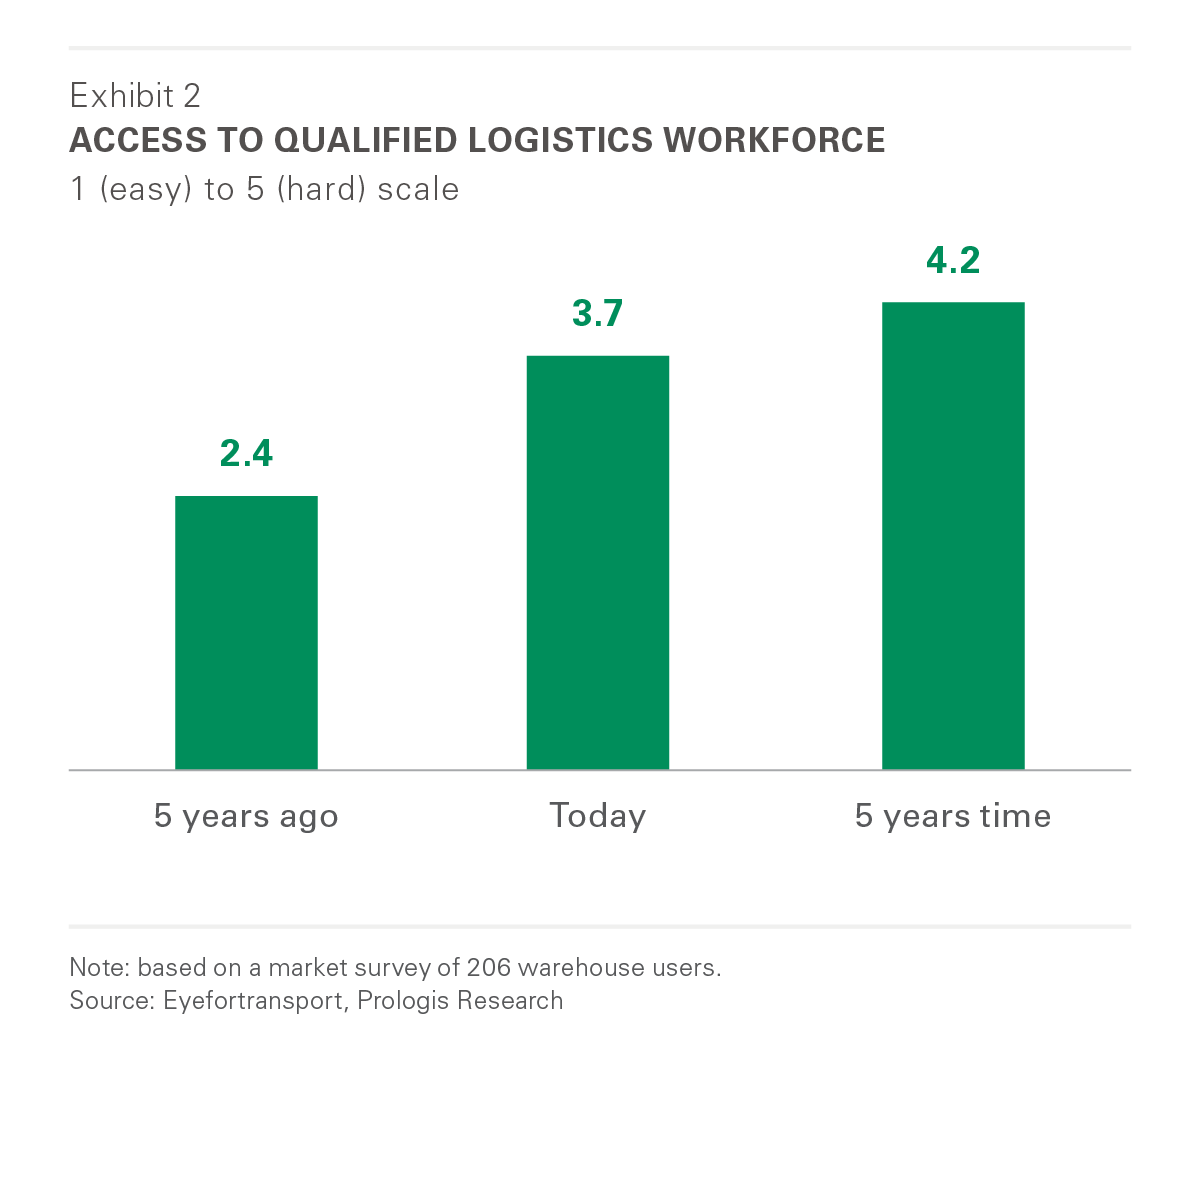 Access to Qualified Logistics Workforce